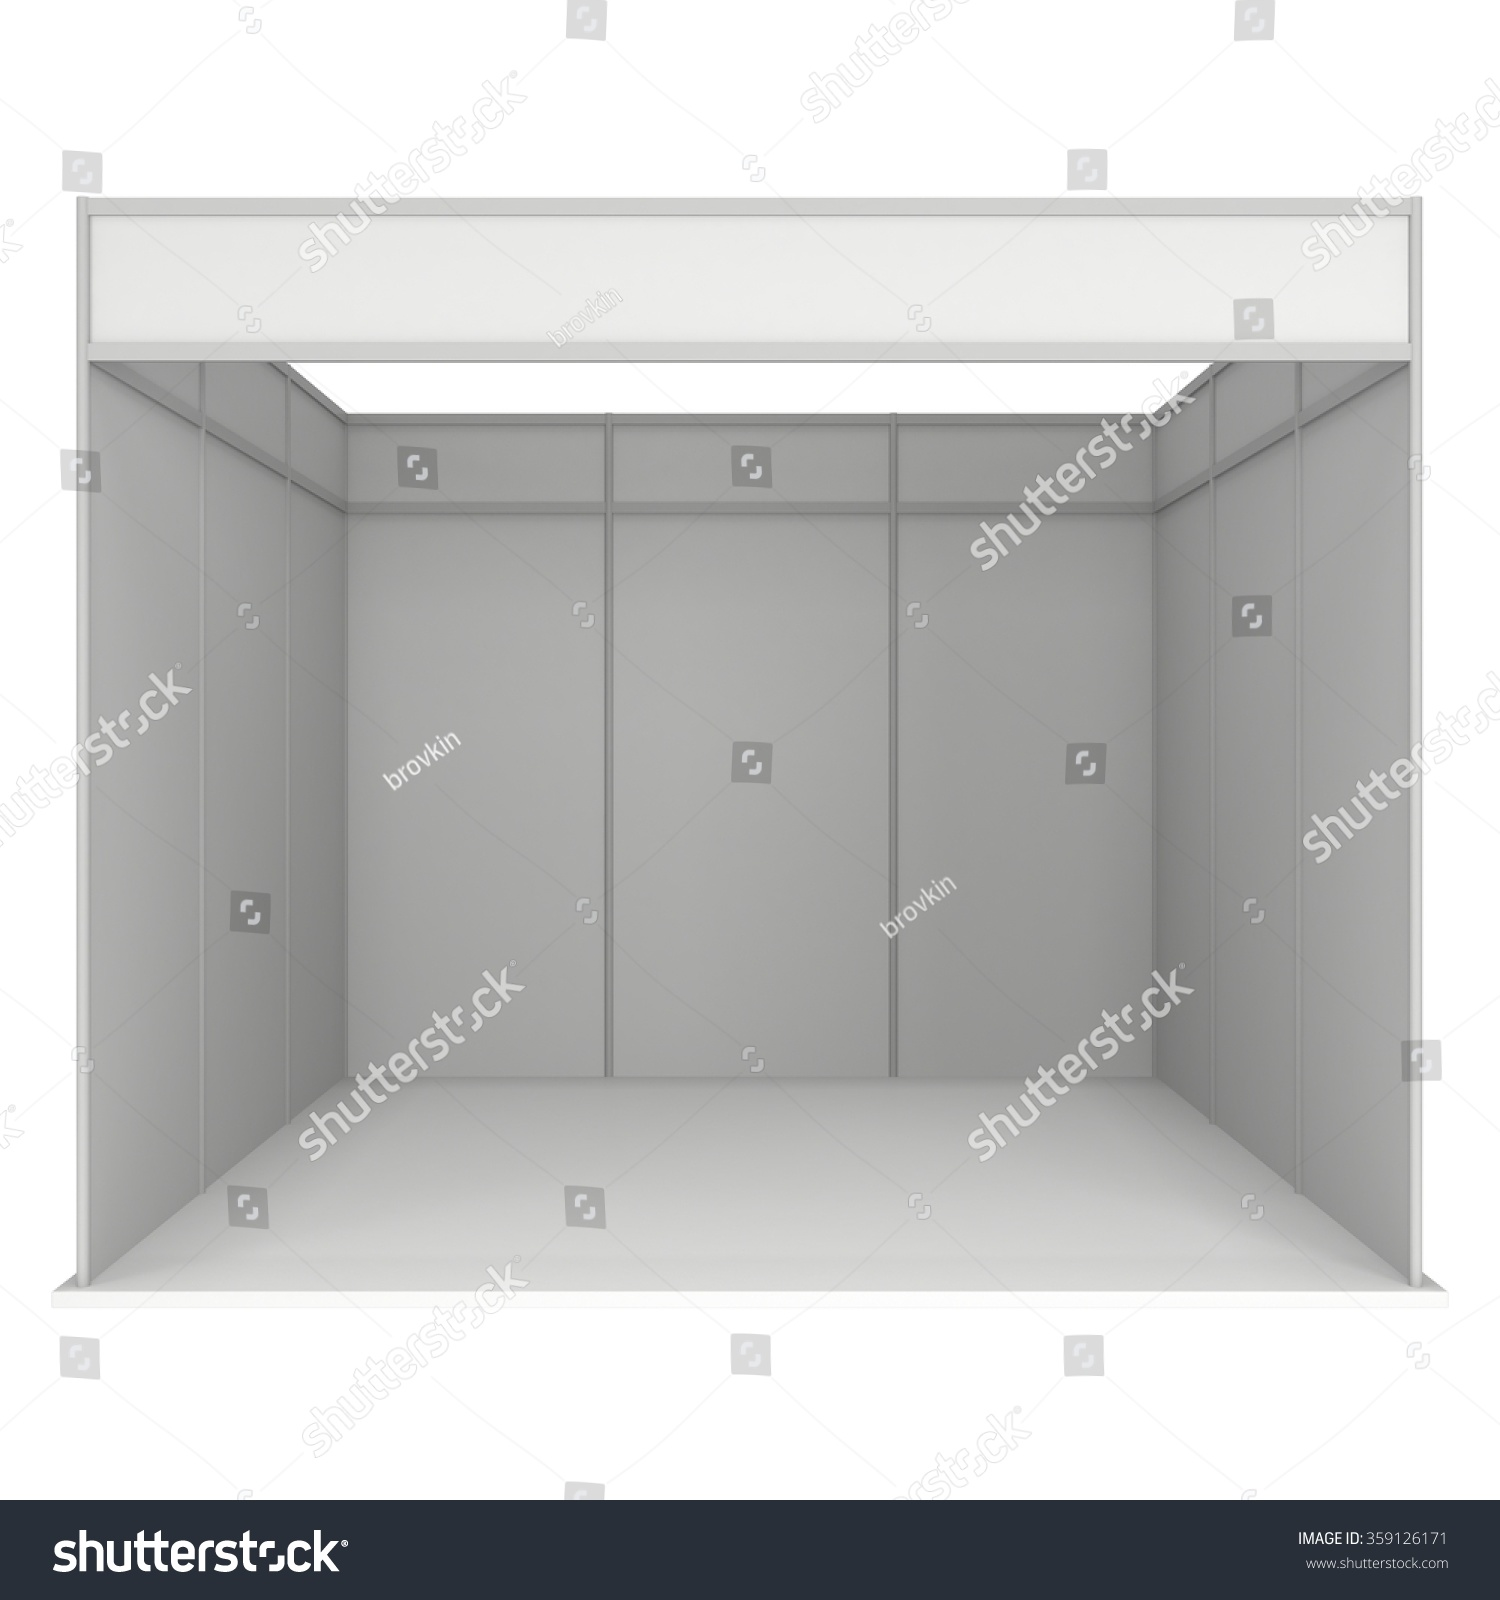 Exhibition Booth Template : Trade show booth white blank stock illustration